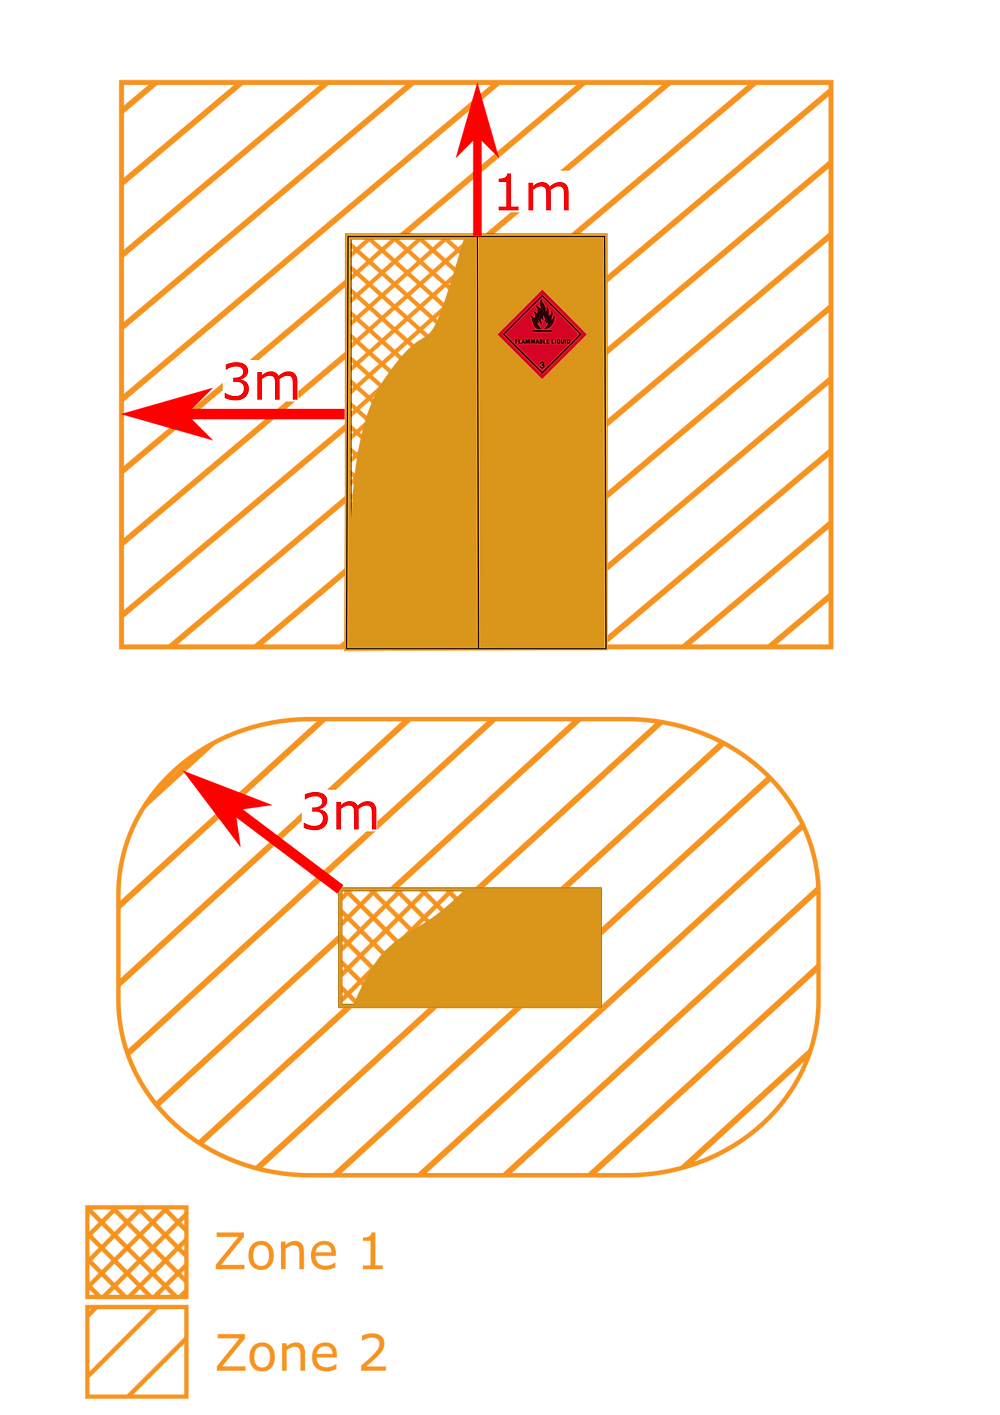 An image of a flammable liquids cabinet with hatching showing the hazardous area extents